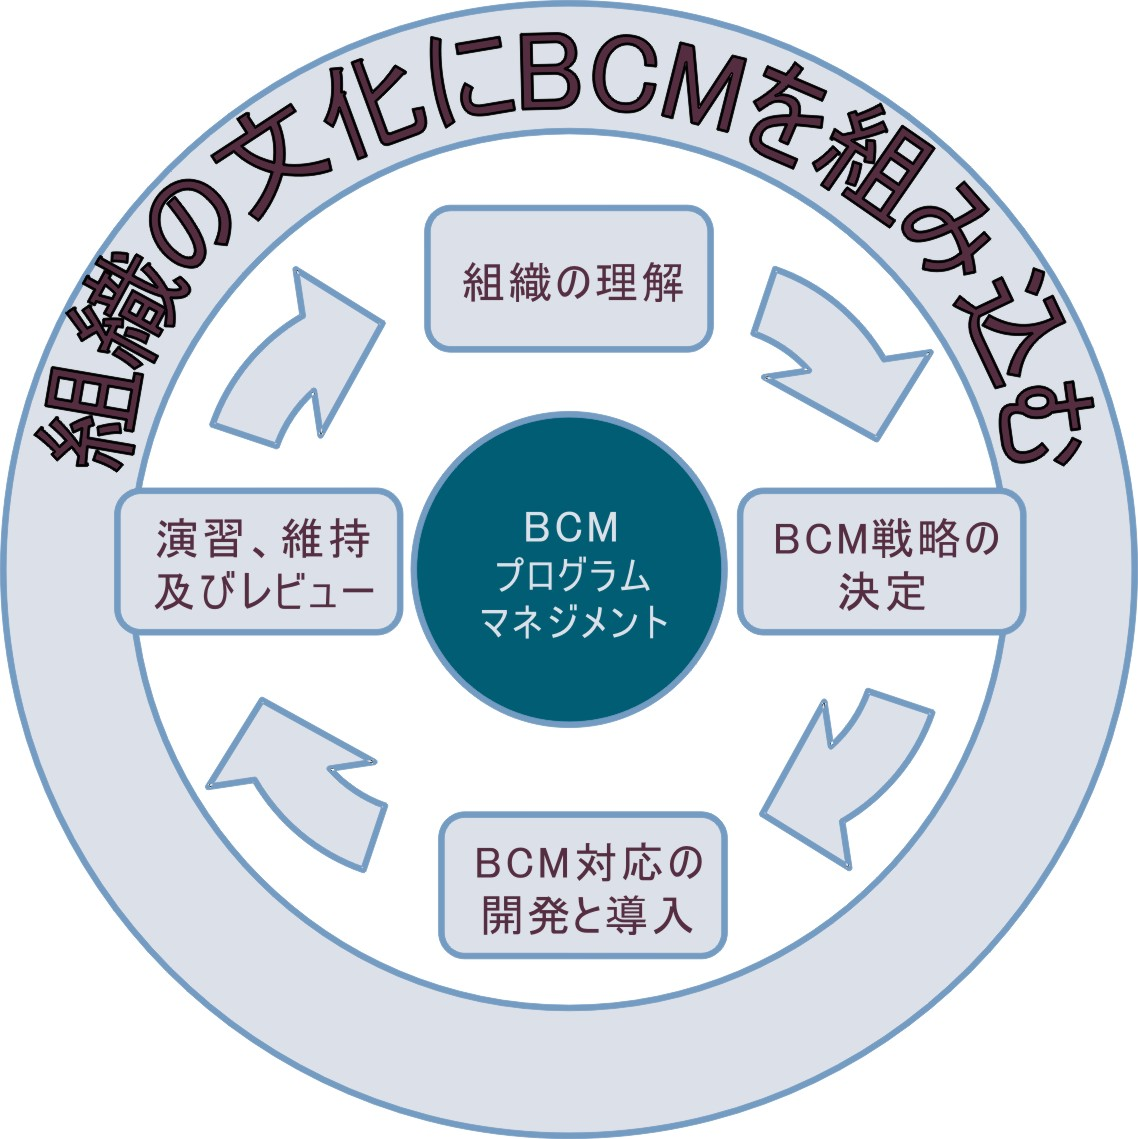 BCMS Life Cycle